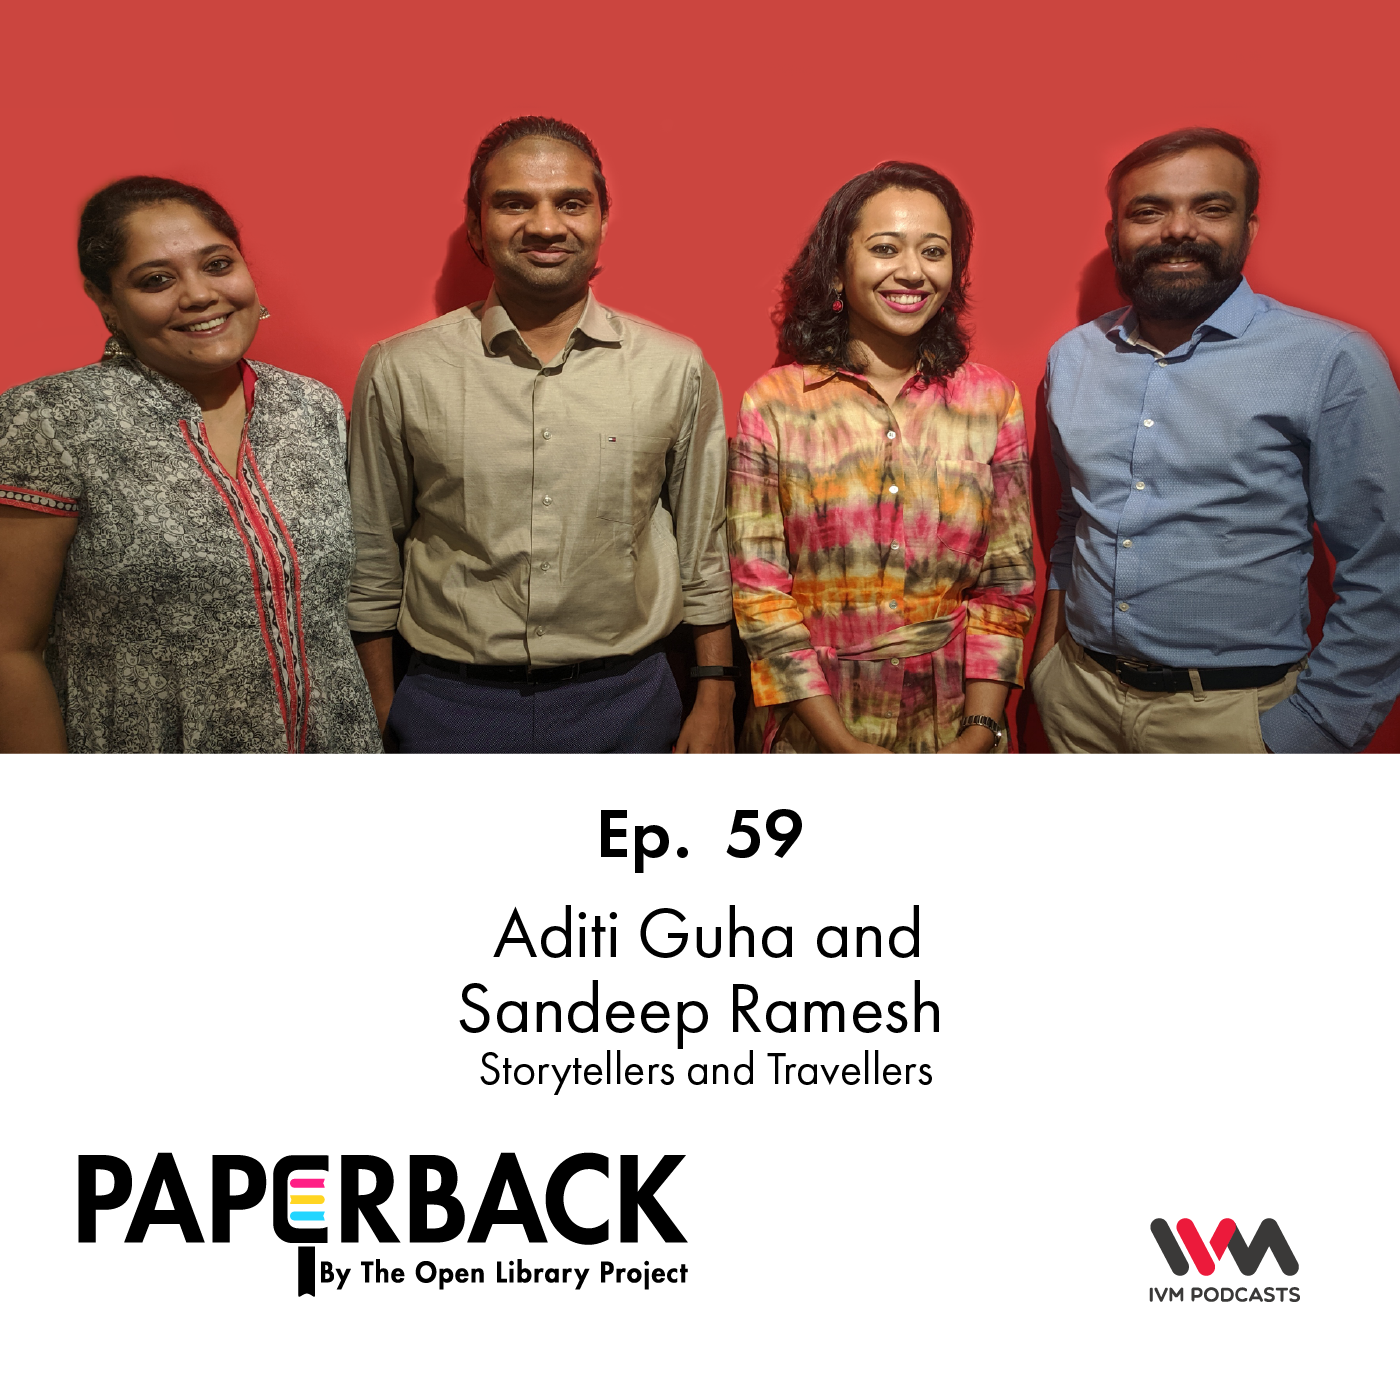 Ep. 59: Aditi Guha and Sandeep Ramesh